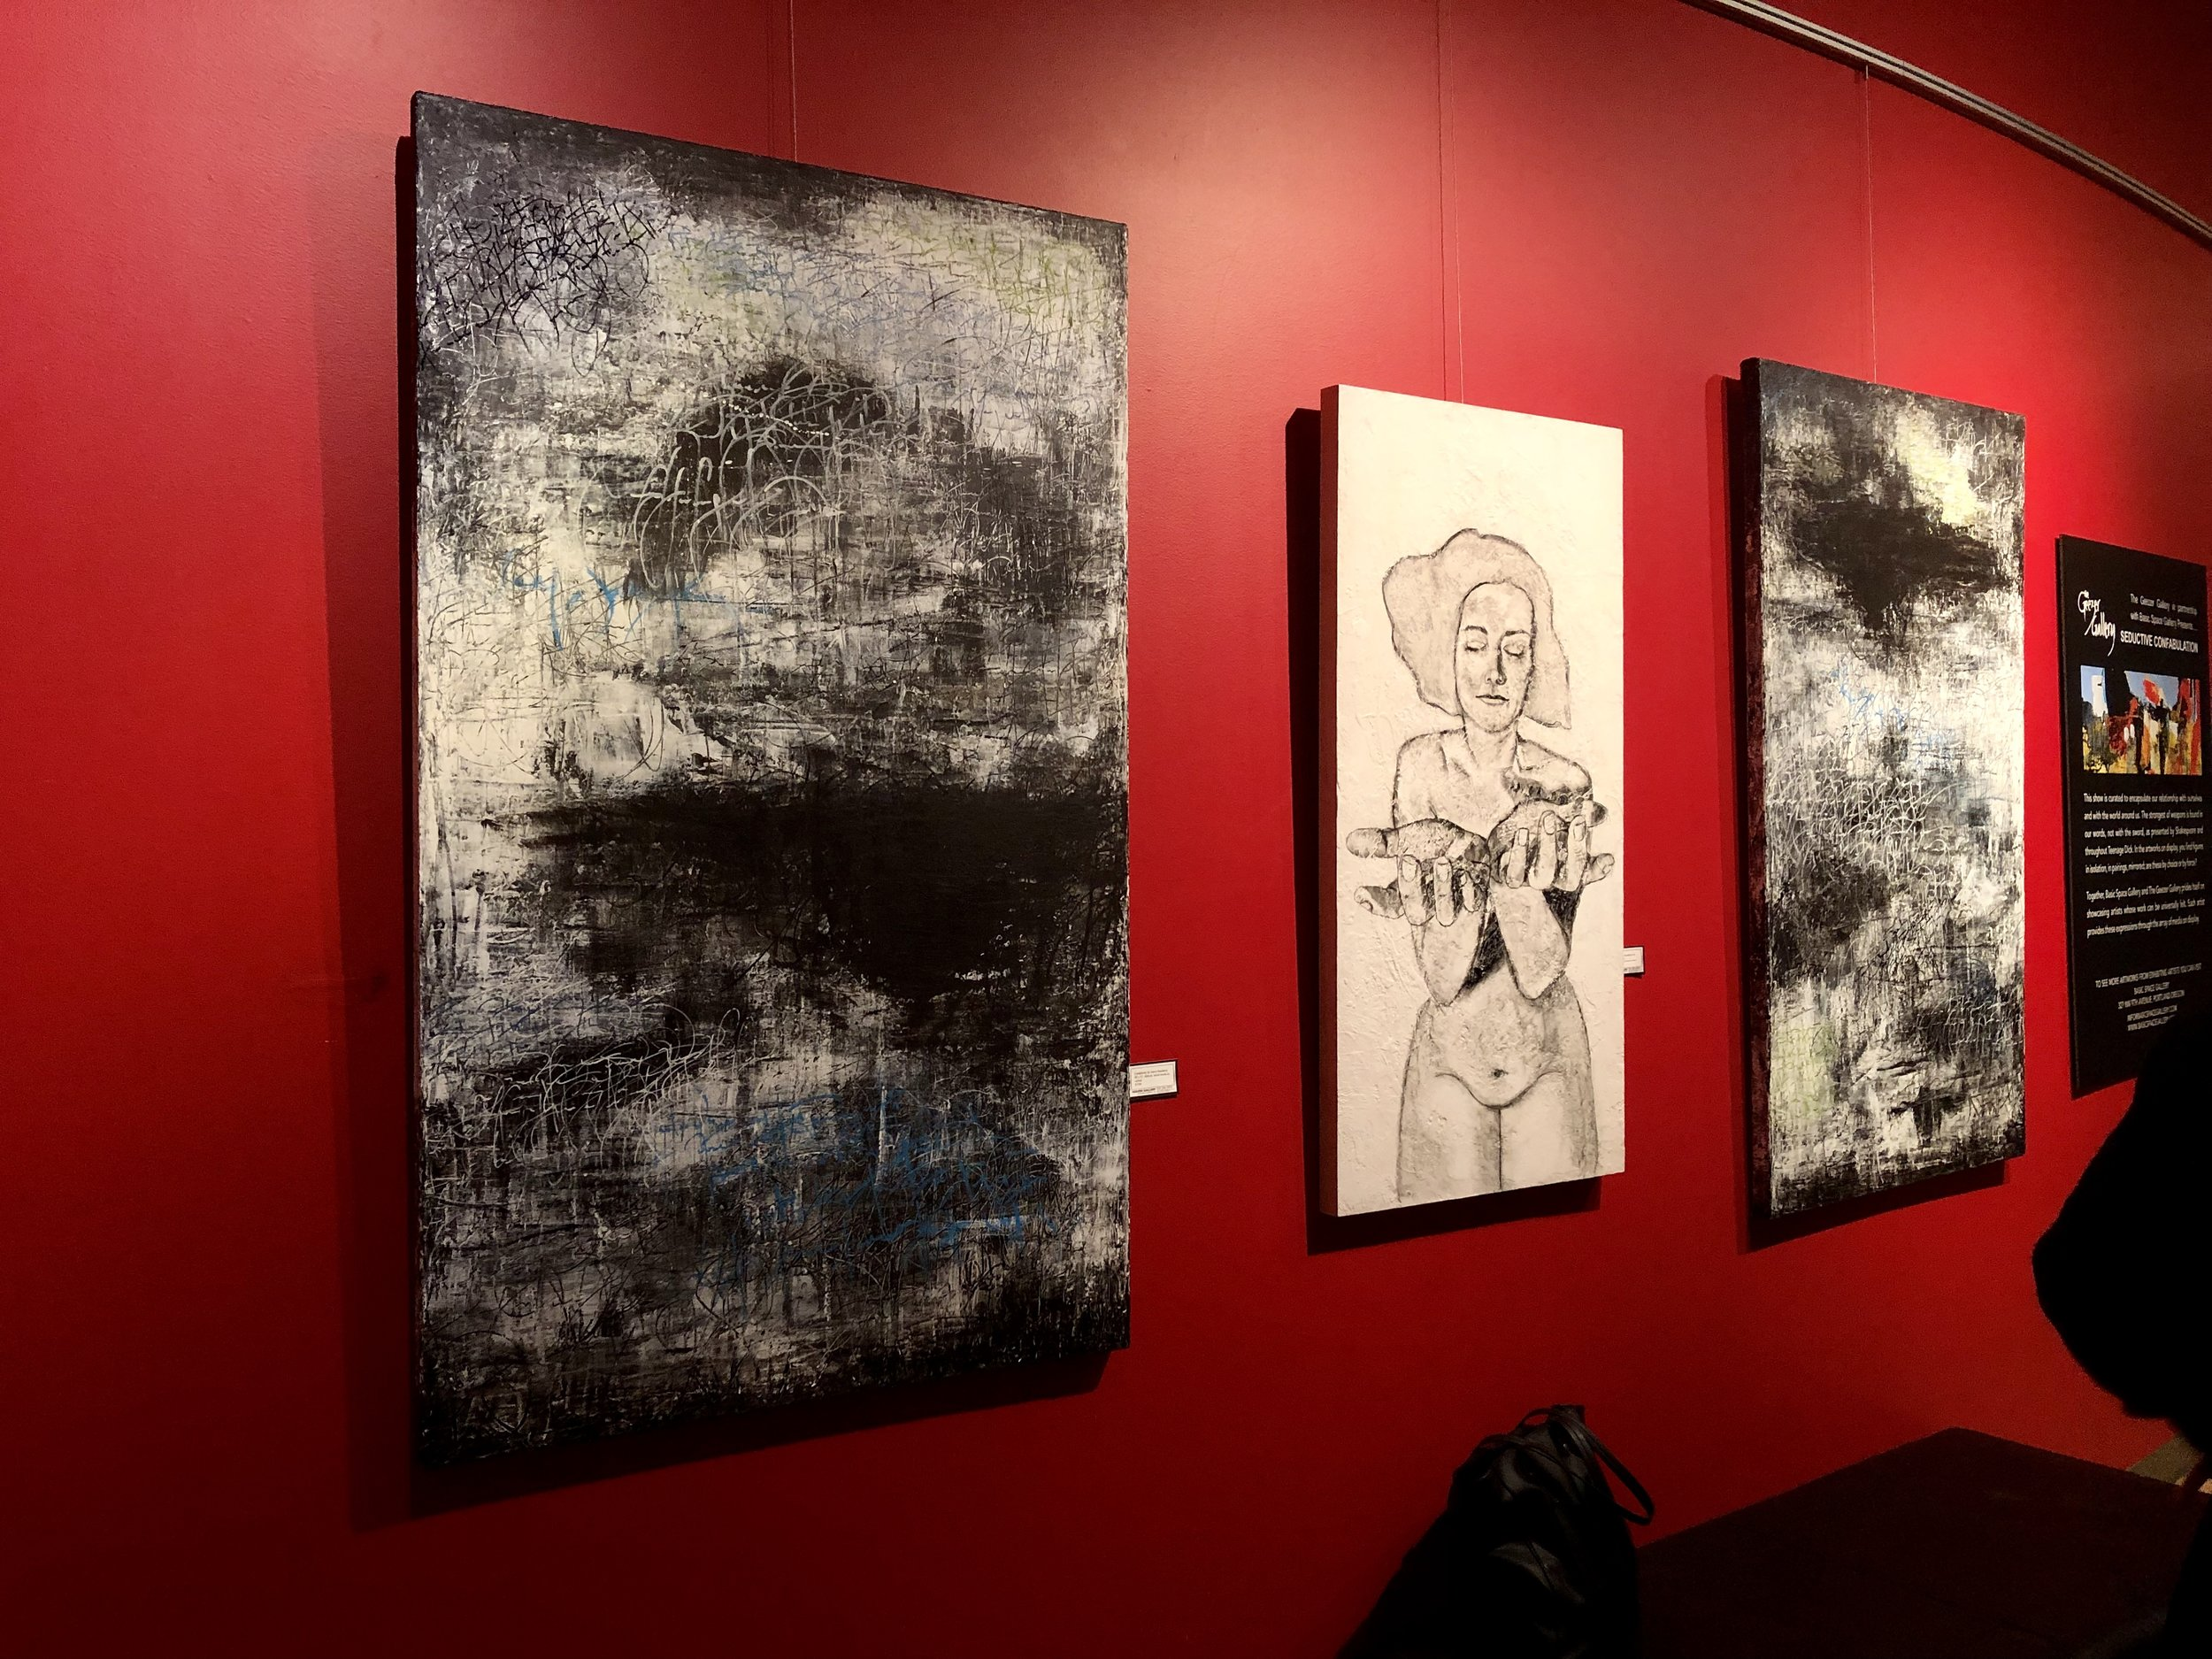 Works by Aaron Stansberry and Kelly Williams